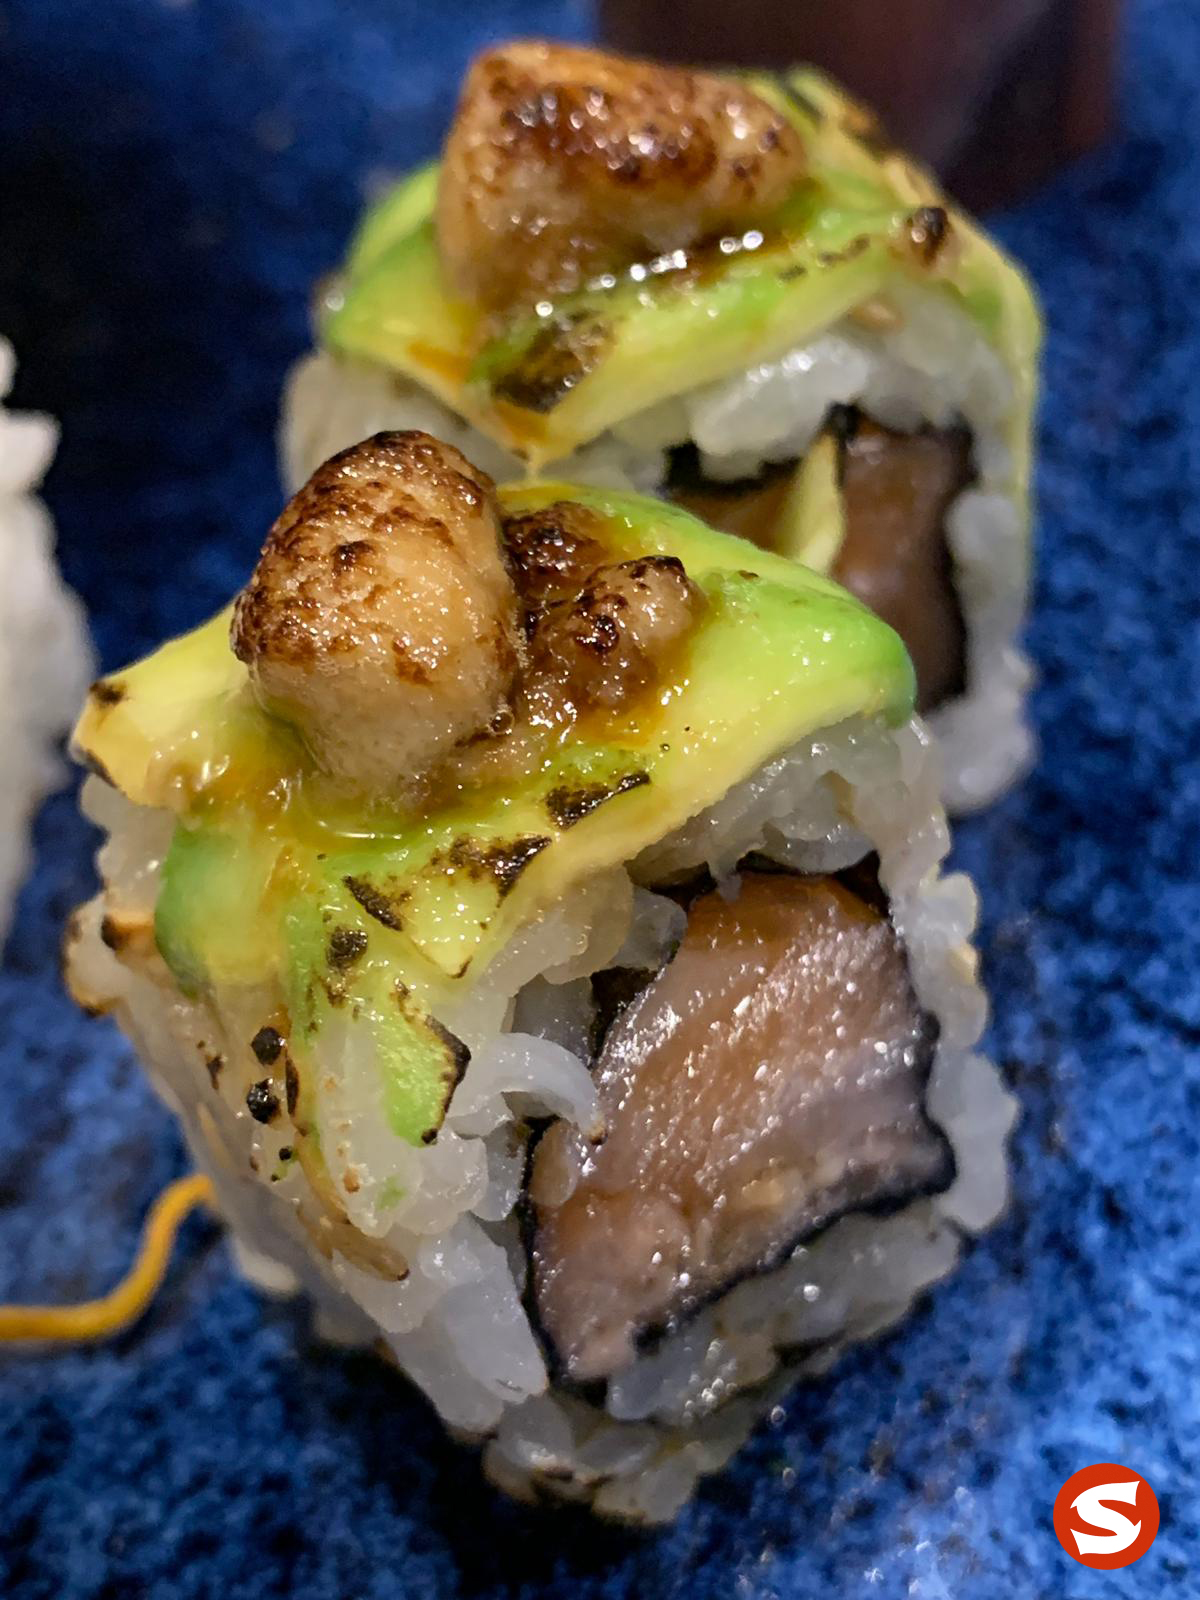 sake (salmon) uramaki (inside out roll) with avocado & hotategai (scallop) topping